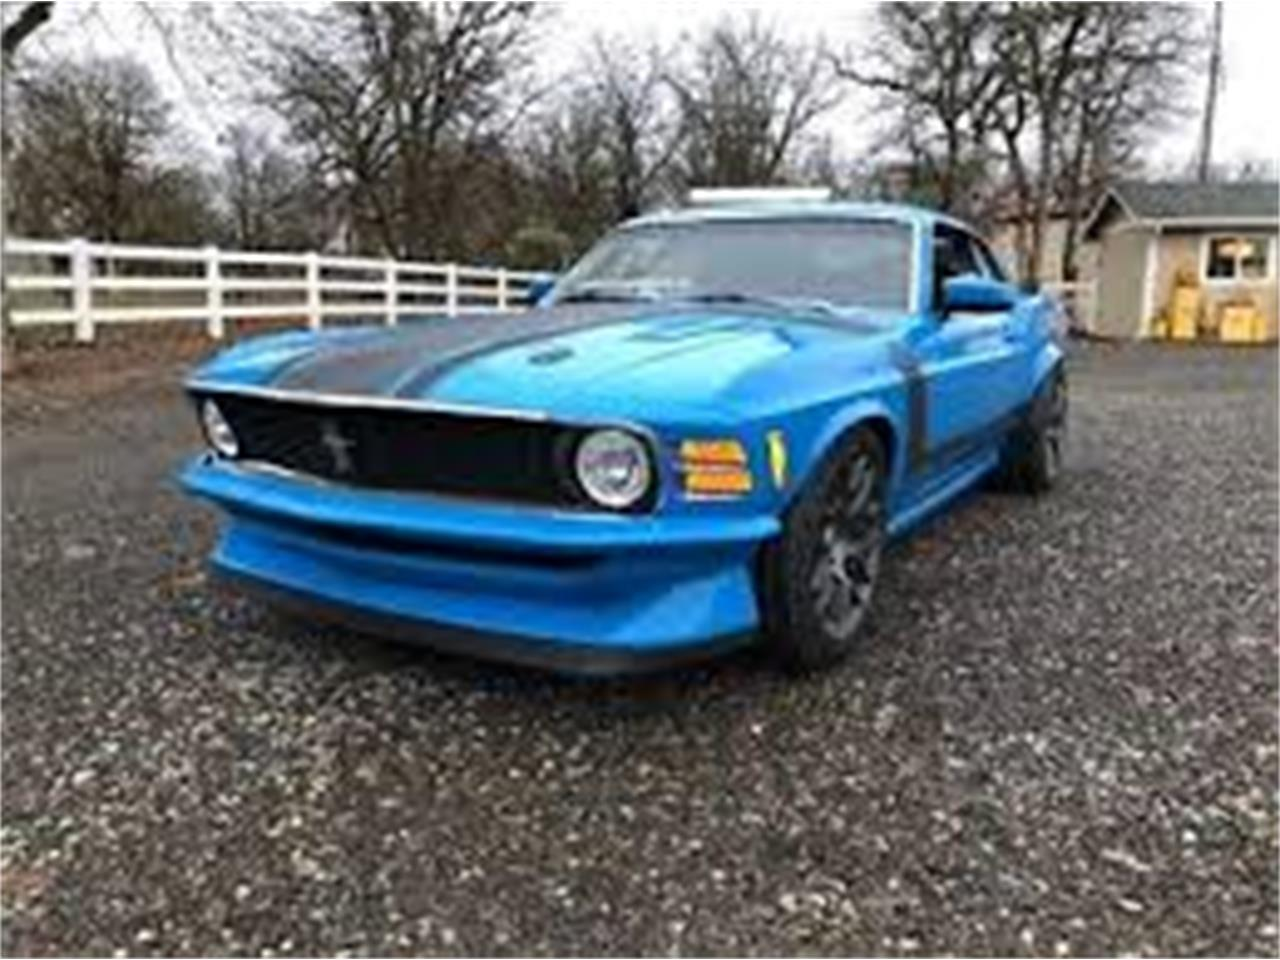 Large Picture of 1970 Ford Mustang located in Utah - $99,999.00 Offered by DT Auto Brokers - PDE8